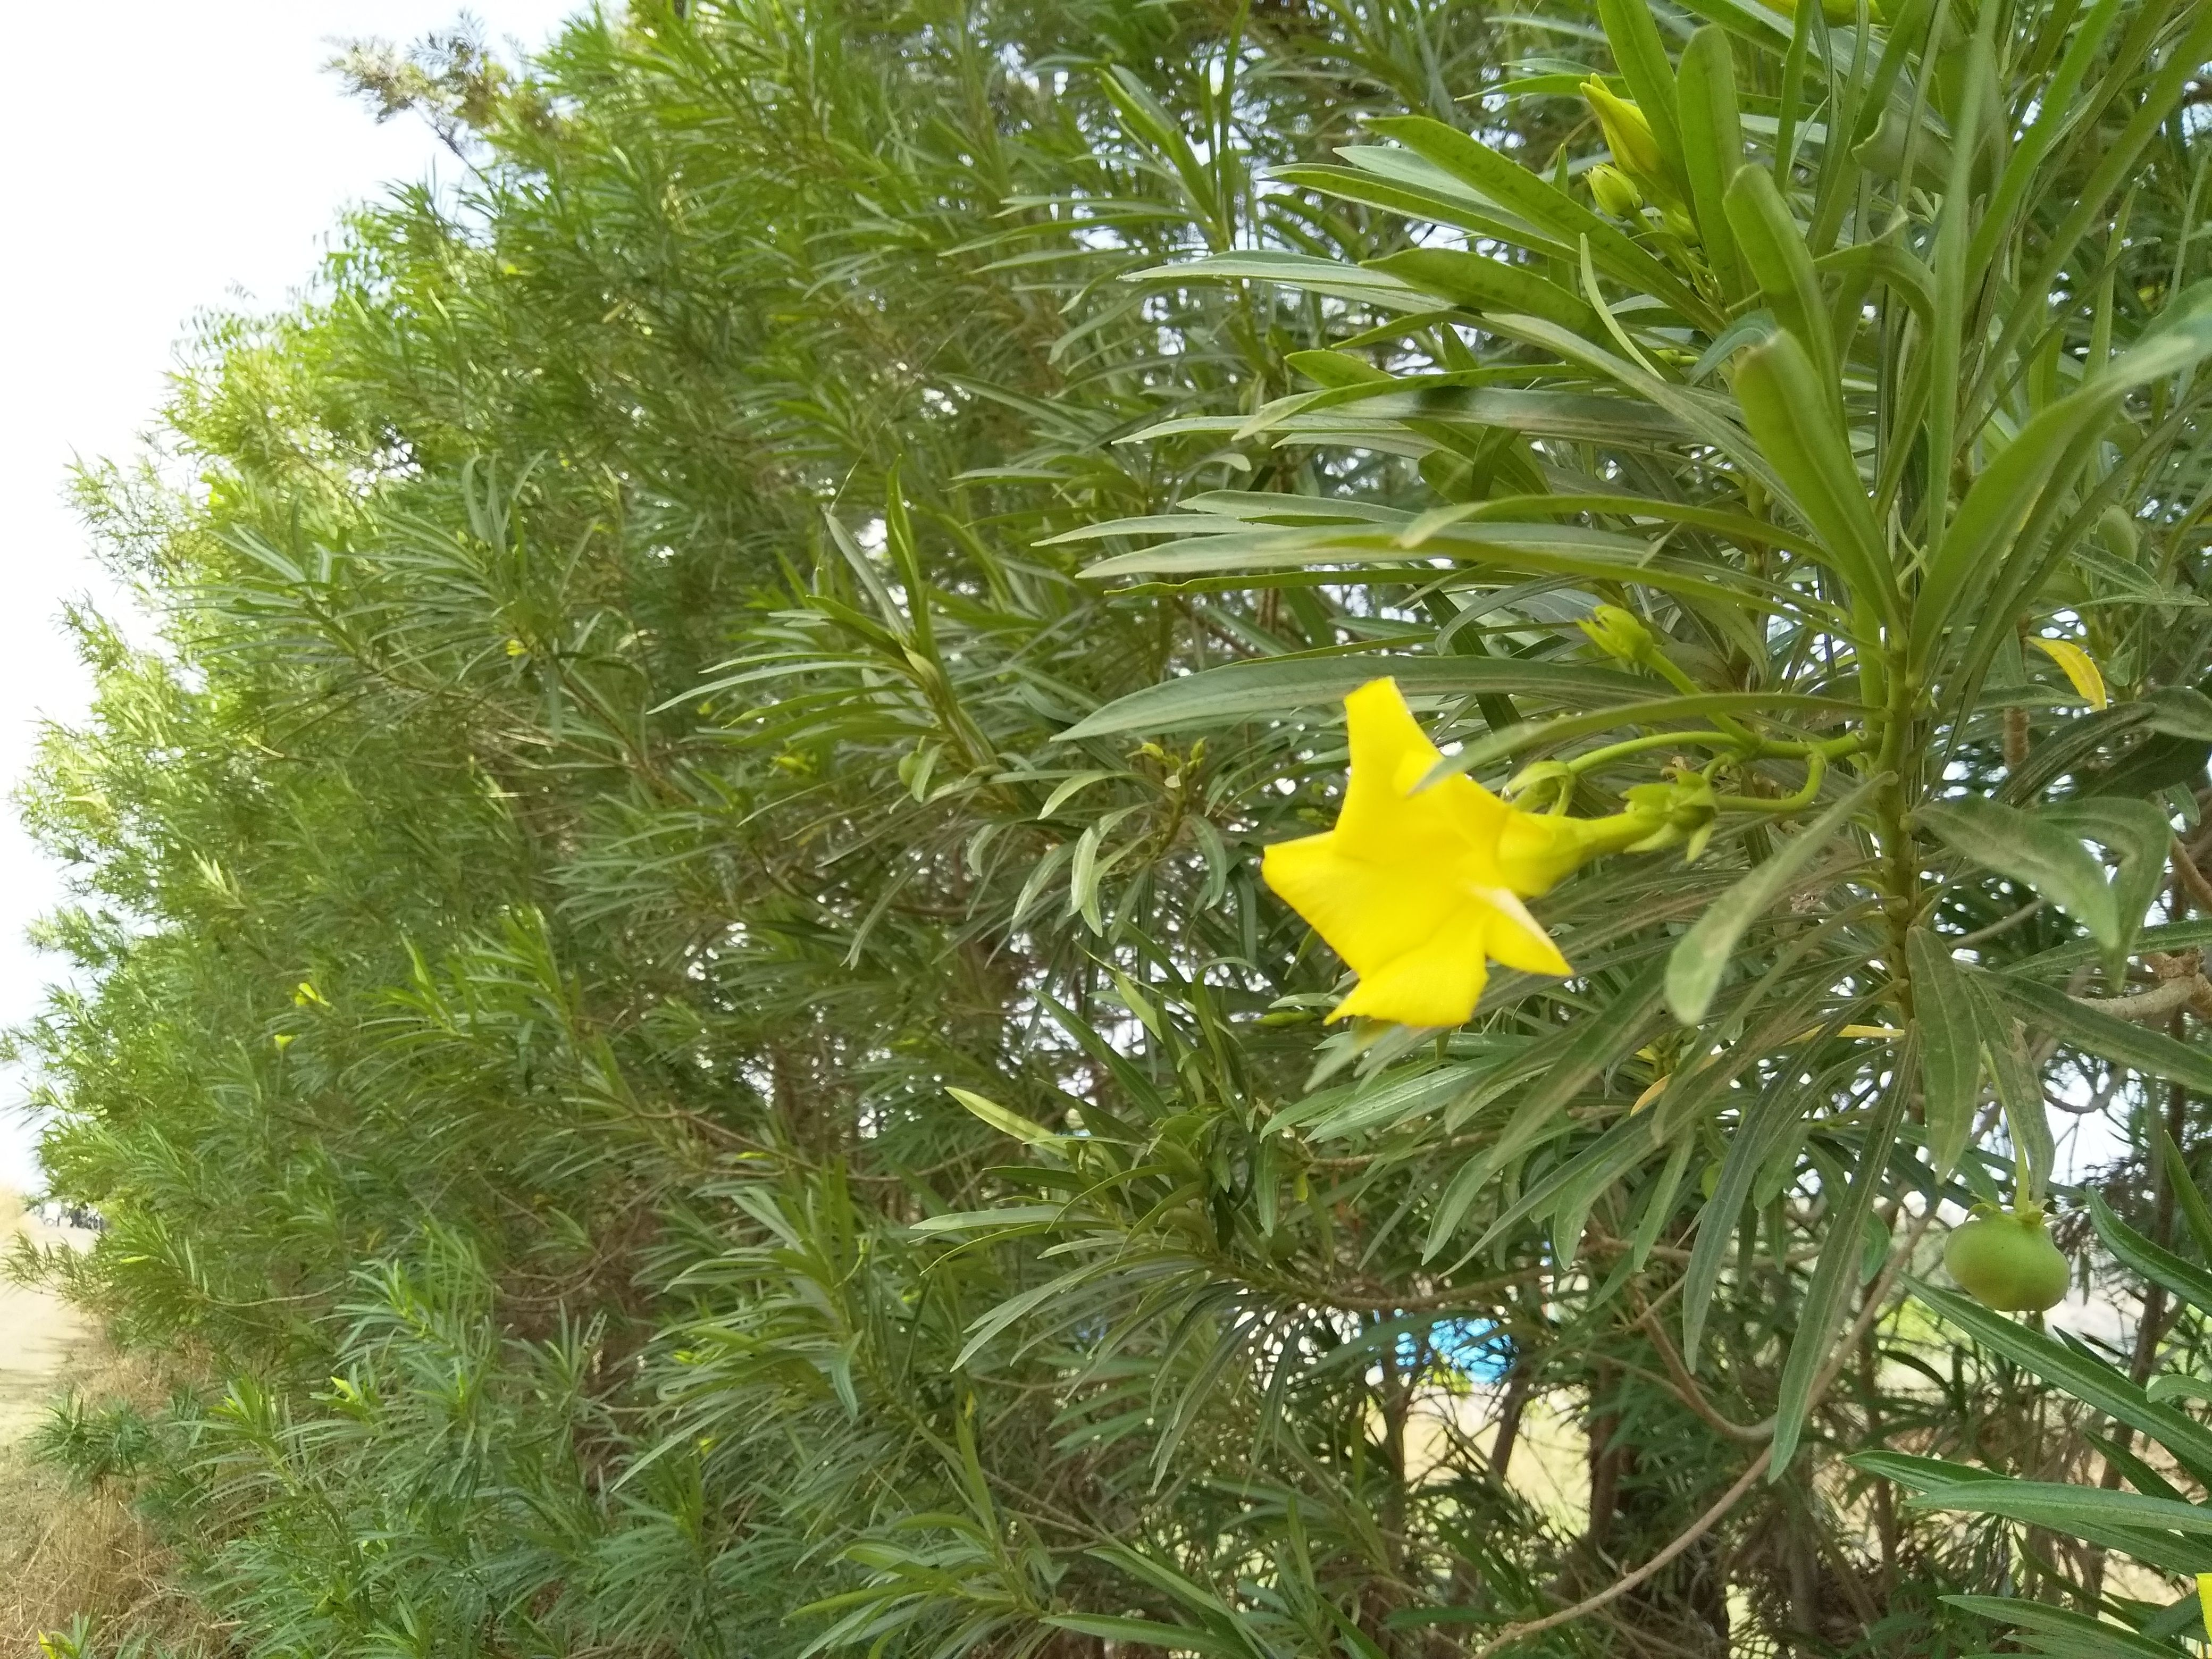 Yellow Oleander Botanical Name Cascabela Thevetica Type Flower Other Name Sanskrit India Karavirah Hindi India कन Fruit Flowers Plants Flowers